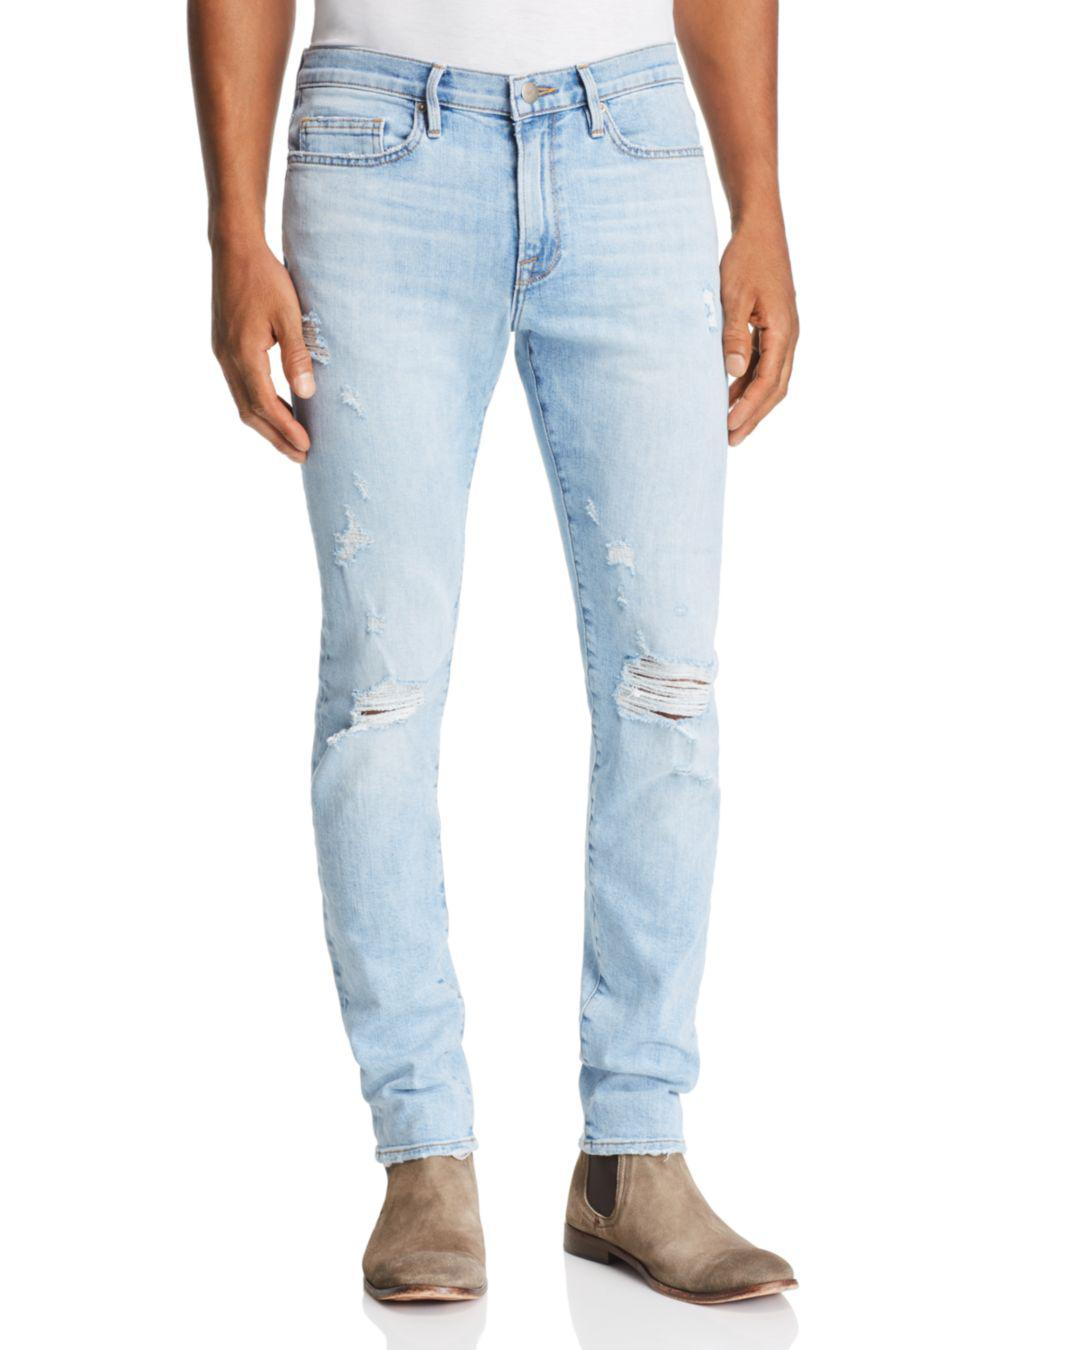 f1064436145 frame-denim-Tubman-Lhomme-Skinny-Fit-Jeans-In-Tubman.jpeg